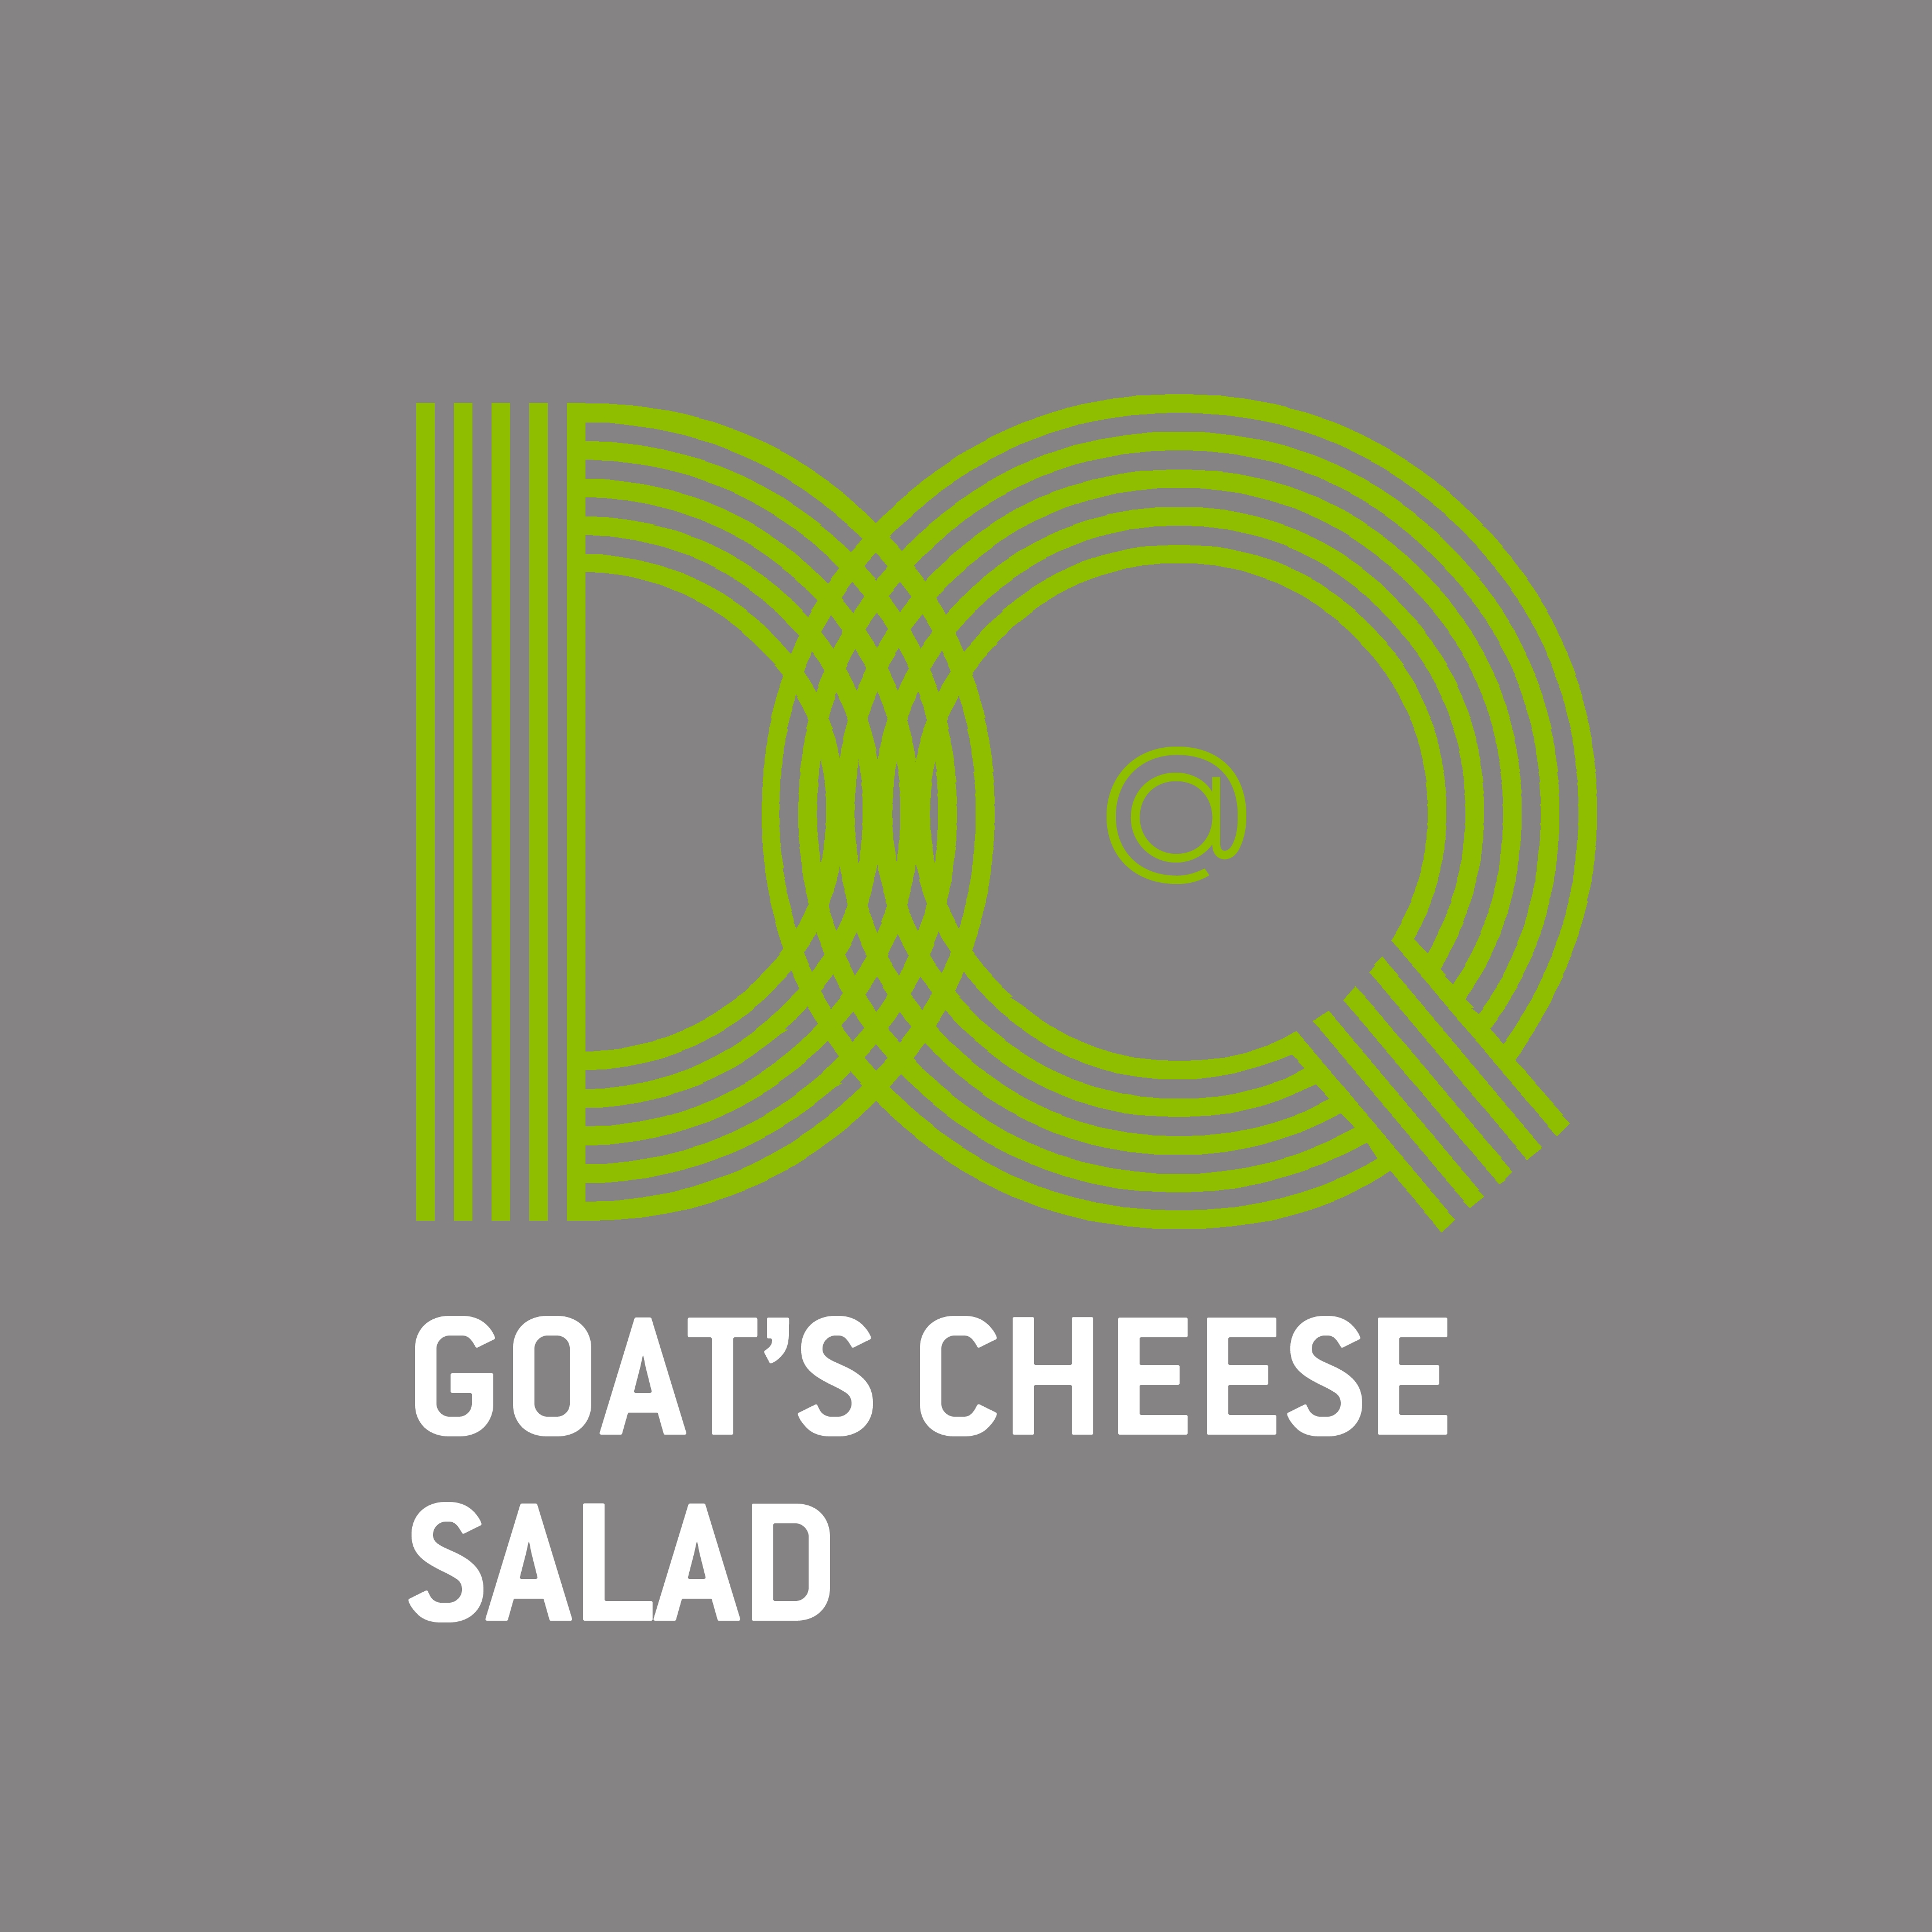 03. DQ - GOAT'S CHEESE SALAD